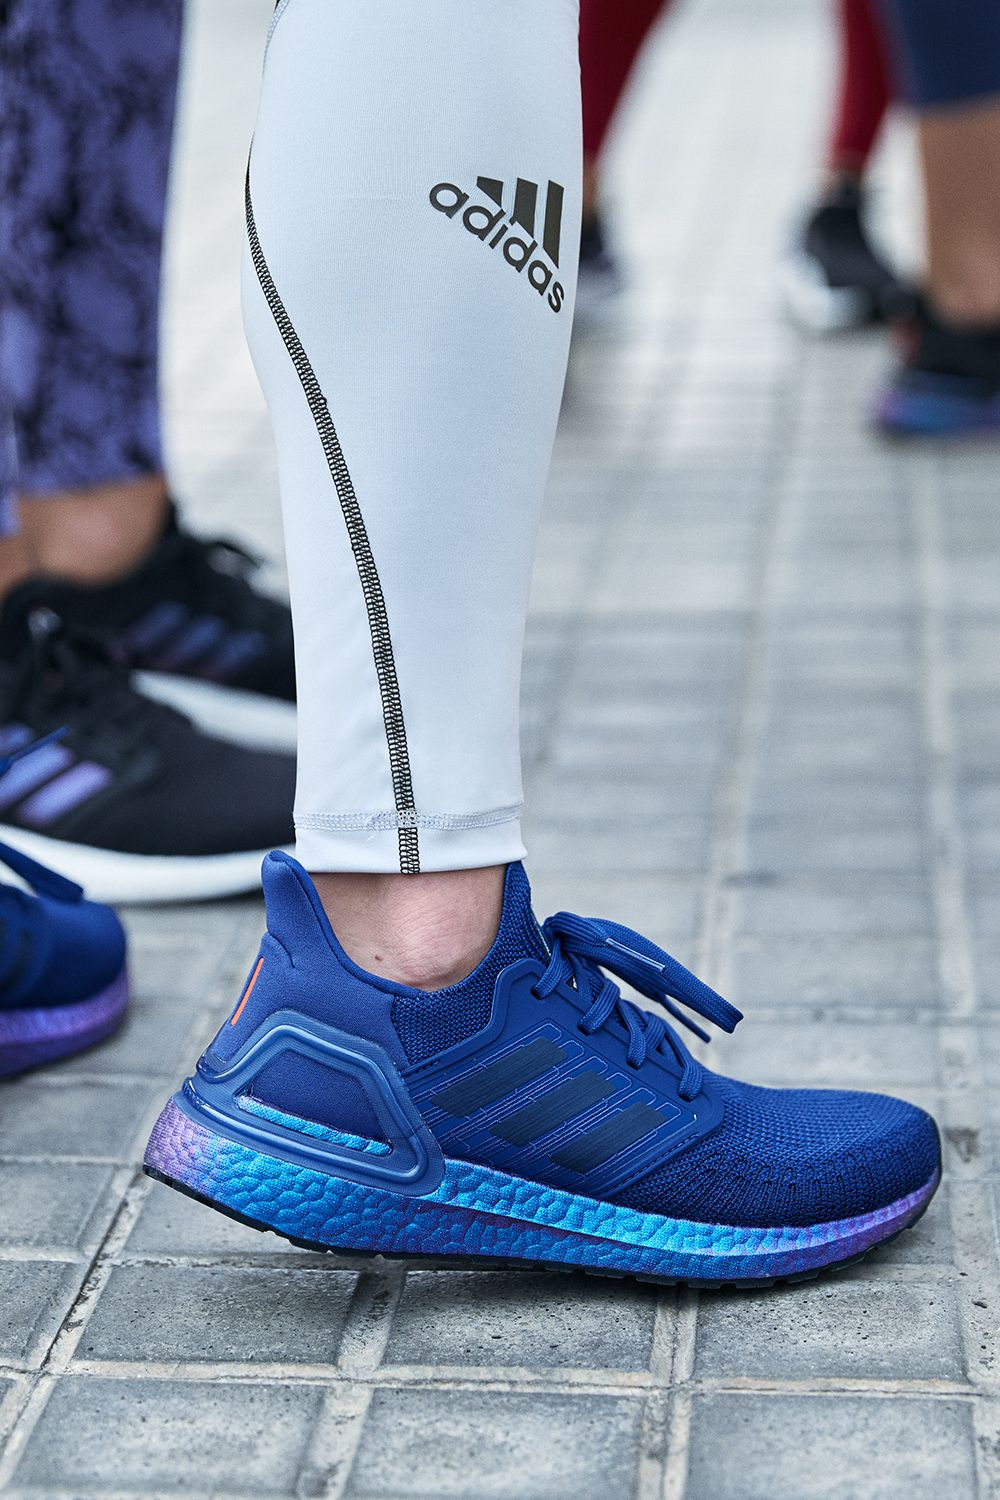 Ultraboost 20 Shoes in 2020 Adidas ultra boost, Blue